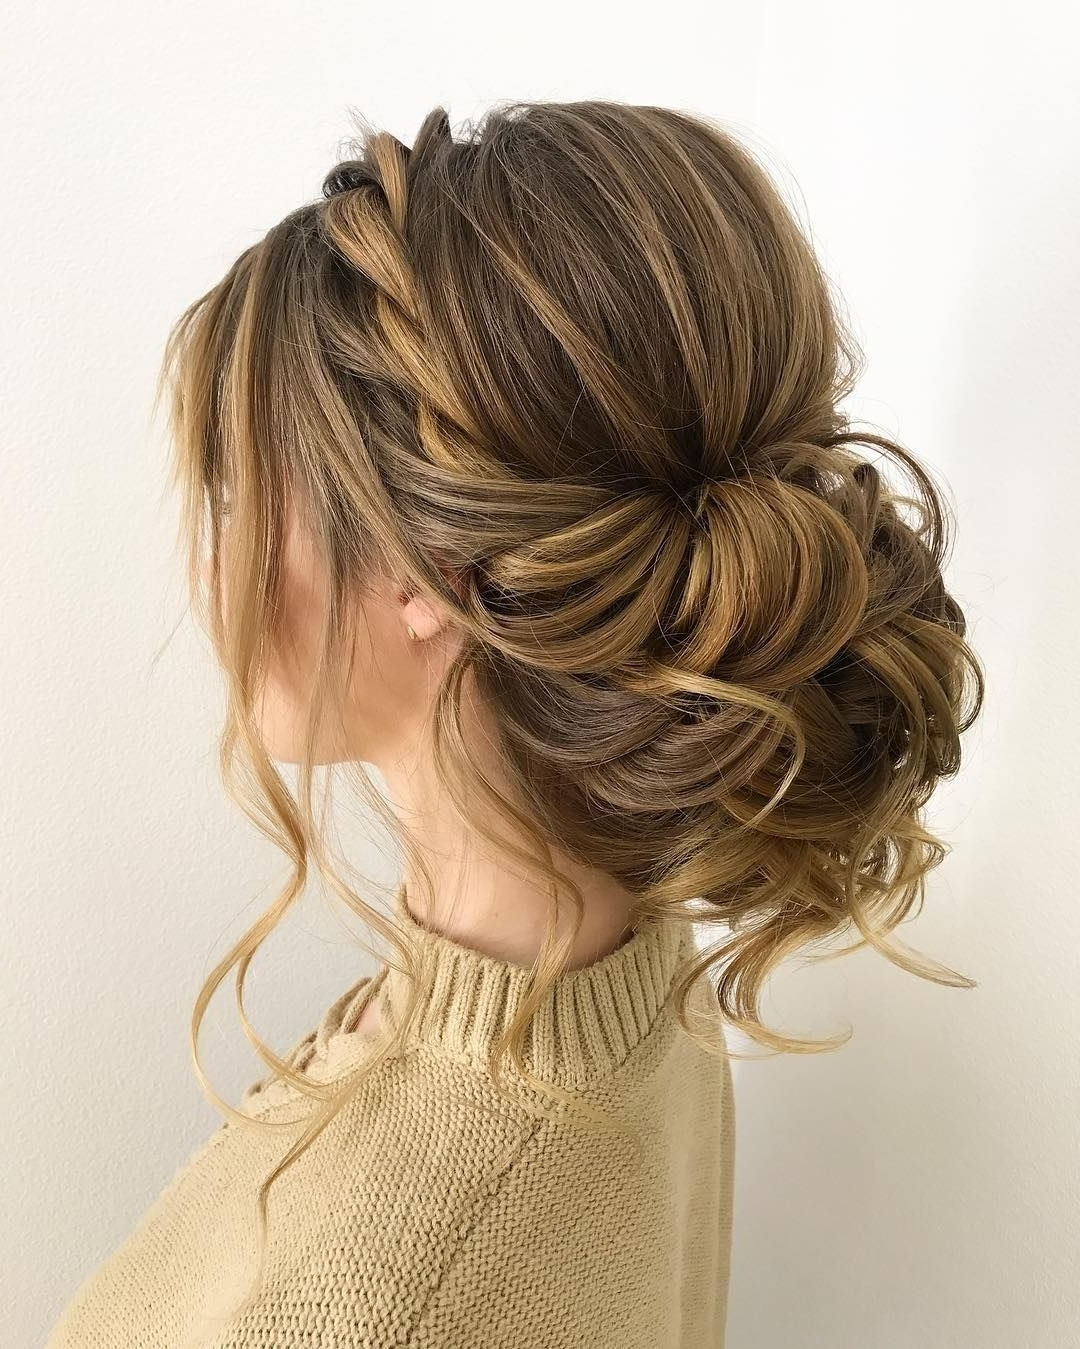 Gorgeous Wedding Updo Hairstyles That Will Wow Your Big Day For Fancy Hairstyles Updo Hairstyles (Gallery 23 of 25)